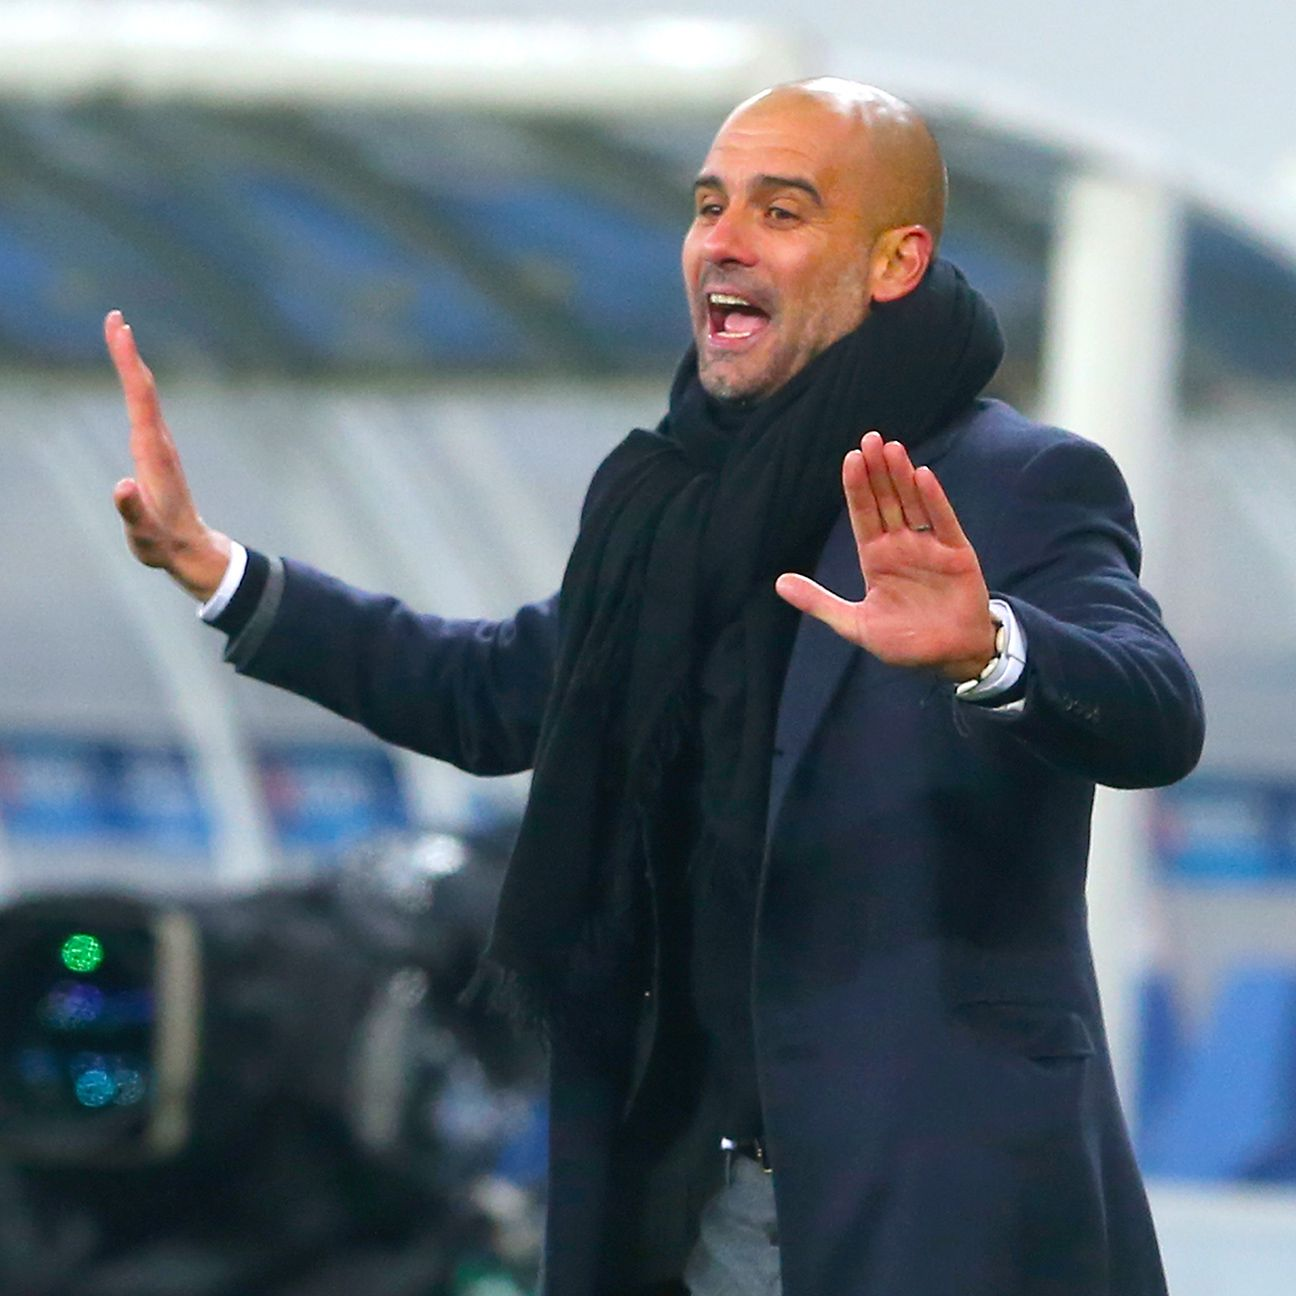 Despite a few hiccups, Pep Guardiola has the Bayern Munich juggernaut completely under control.